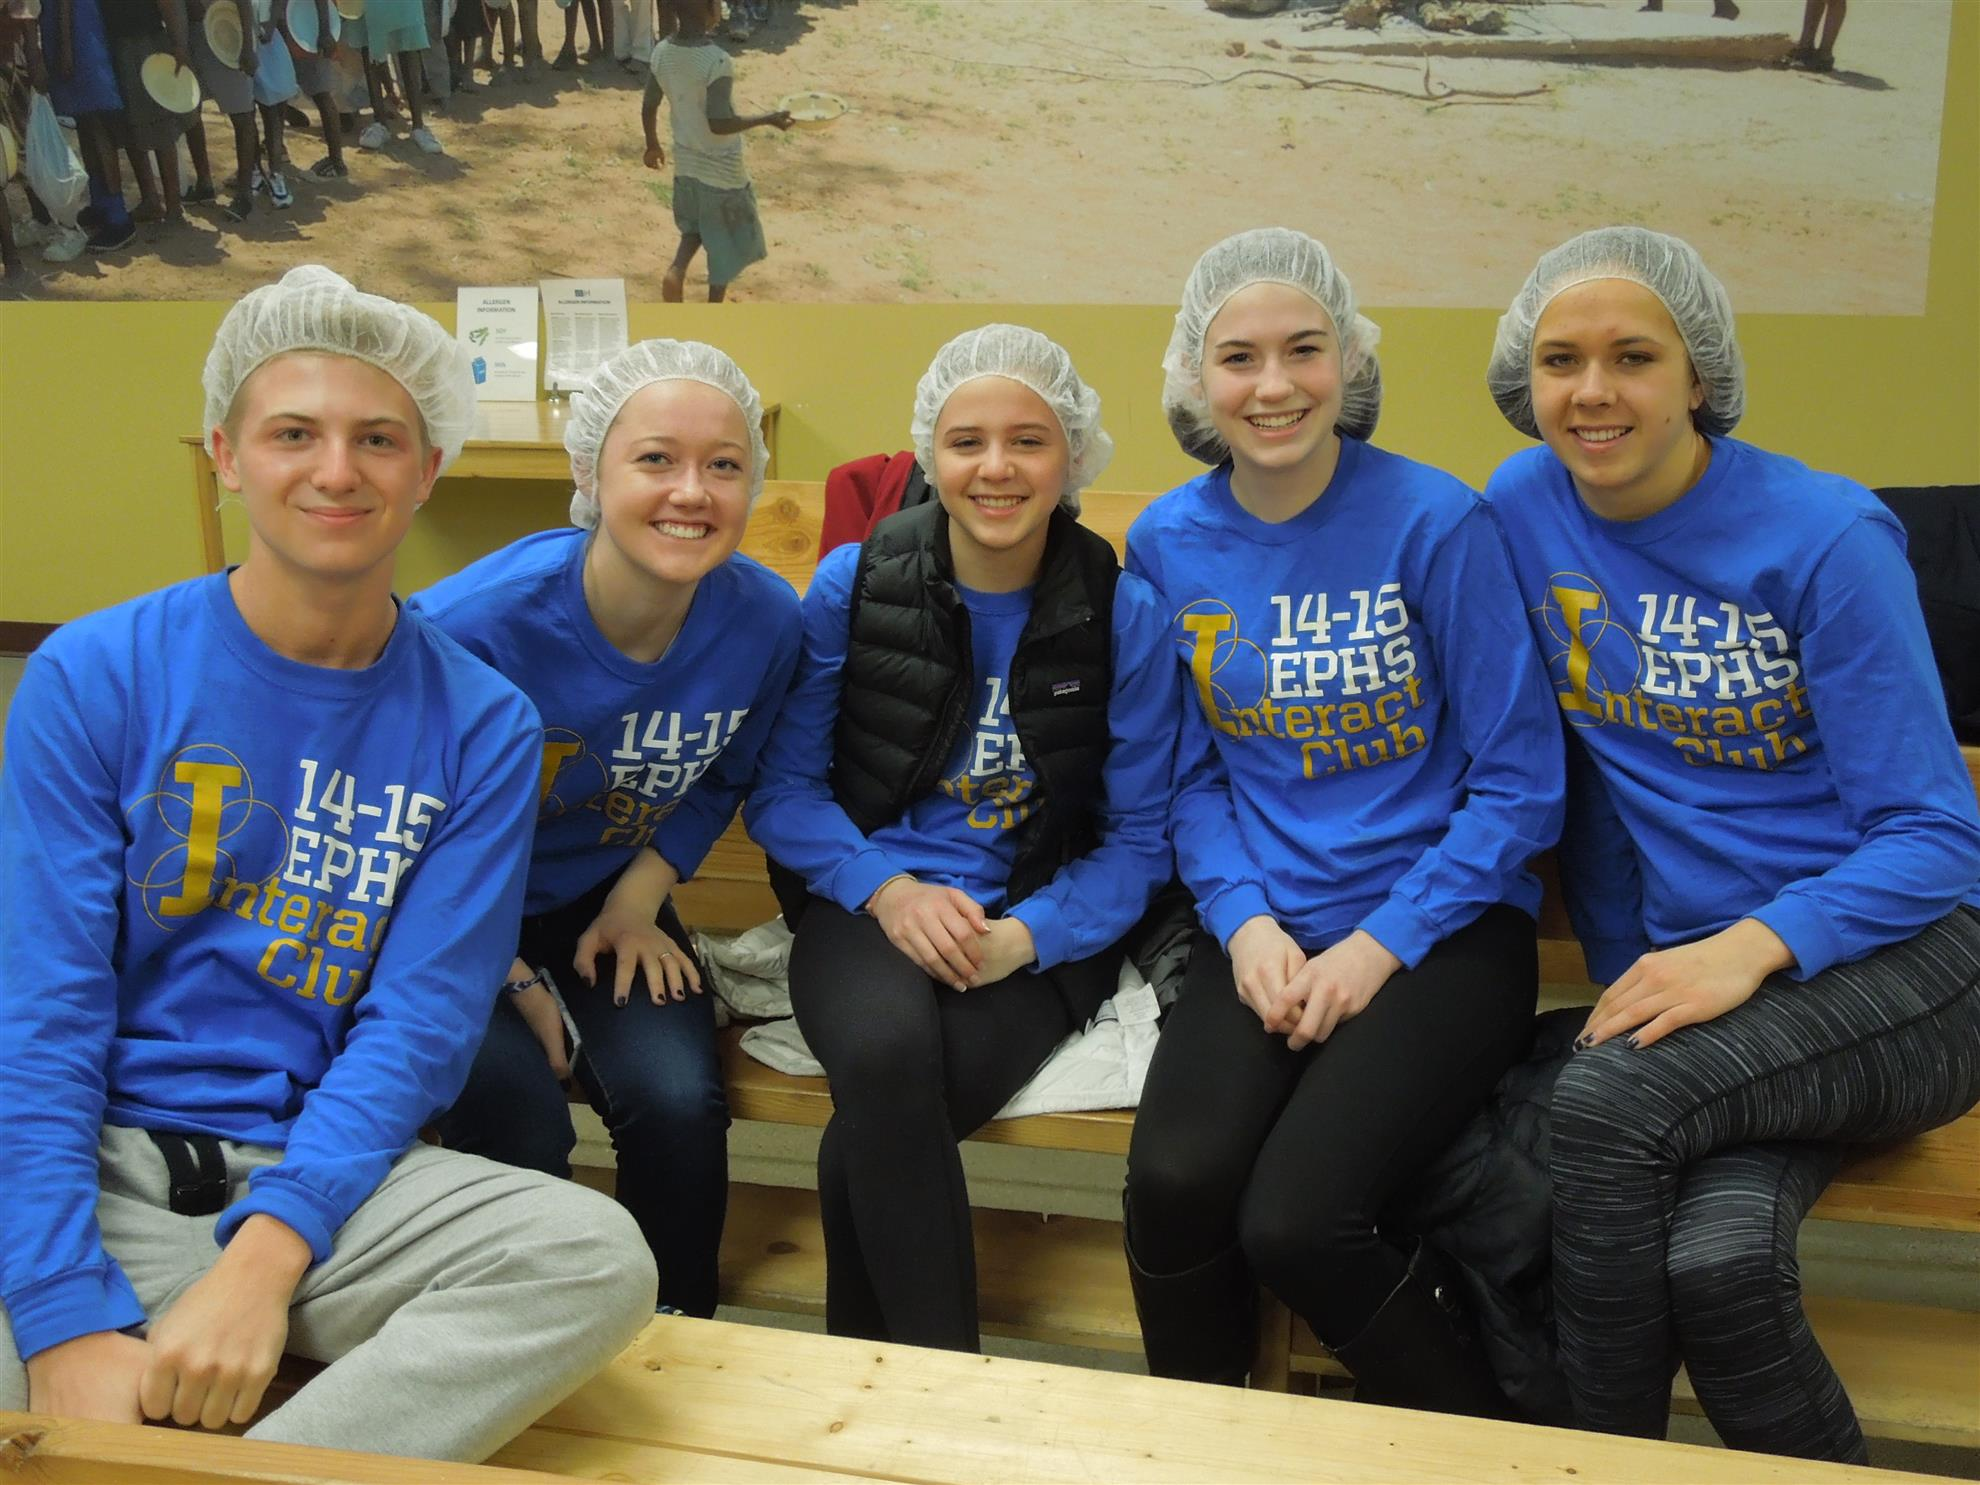 EPHS Interact Club packed food with us